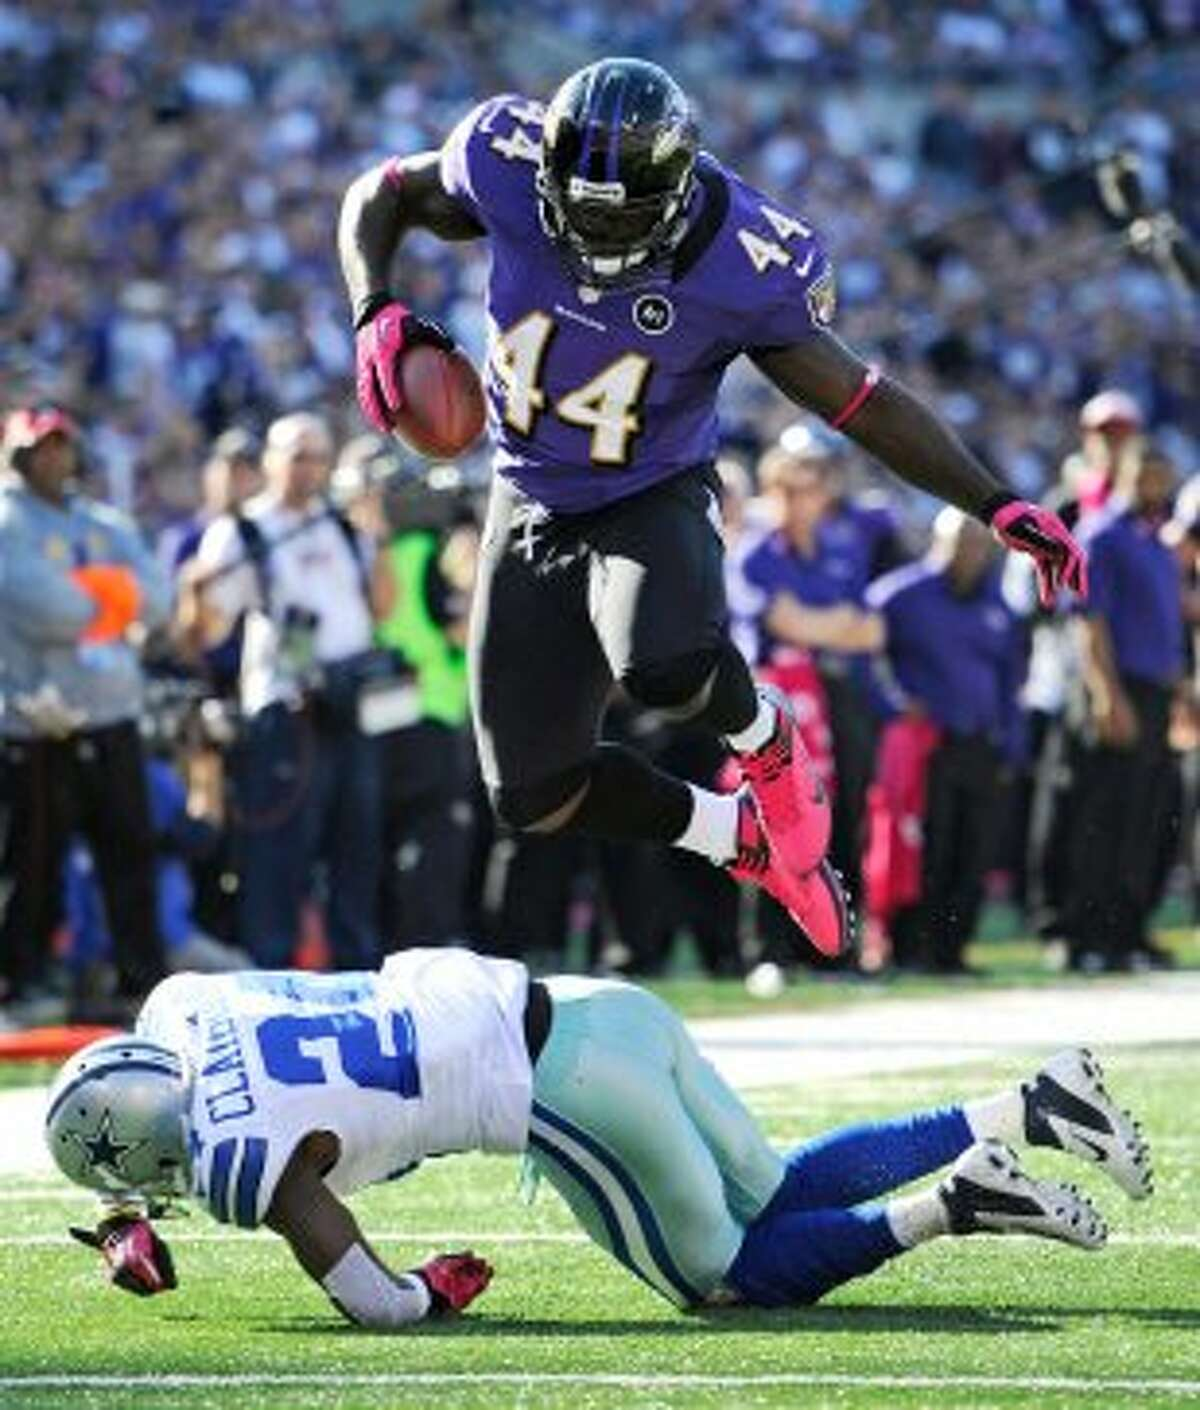 Baltimore Ravens fullback Vonta Leach, top, leaps over Dallas Cowboys cornerback Morris Claiborne in the second half of an NFL football game in Baltimore, Sunday, Oct. 14, 2012. Baltimore won 31-29. (AP Photo/Nick Wass) (Associated Press)